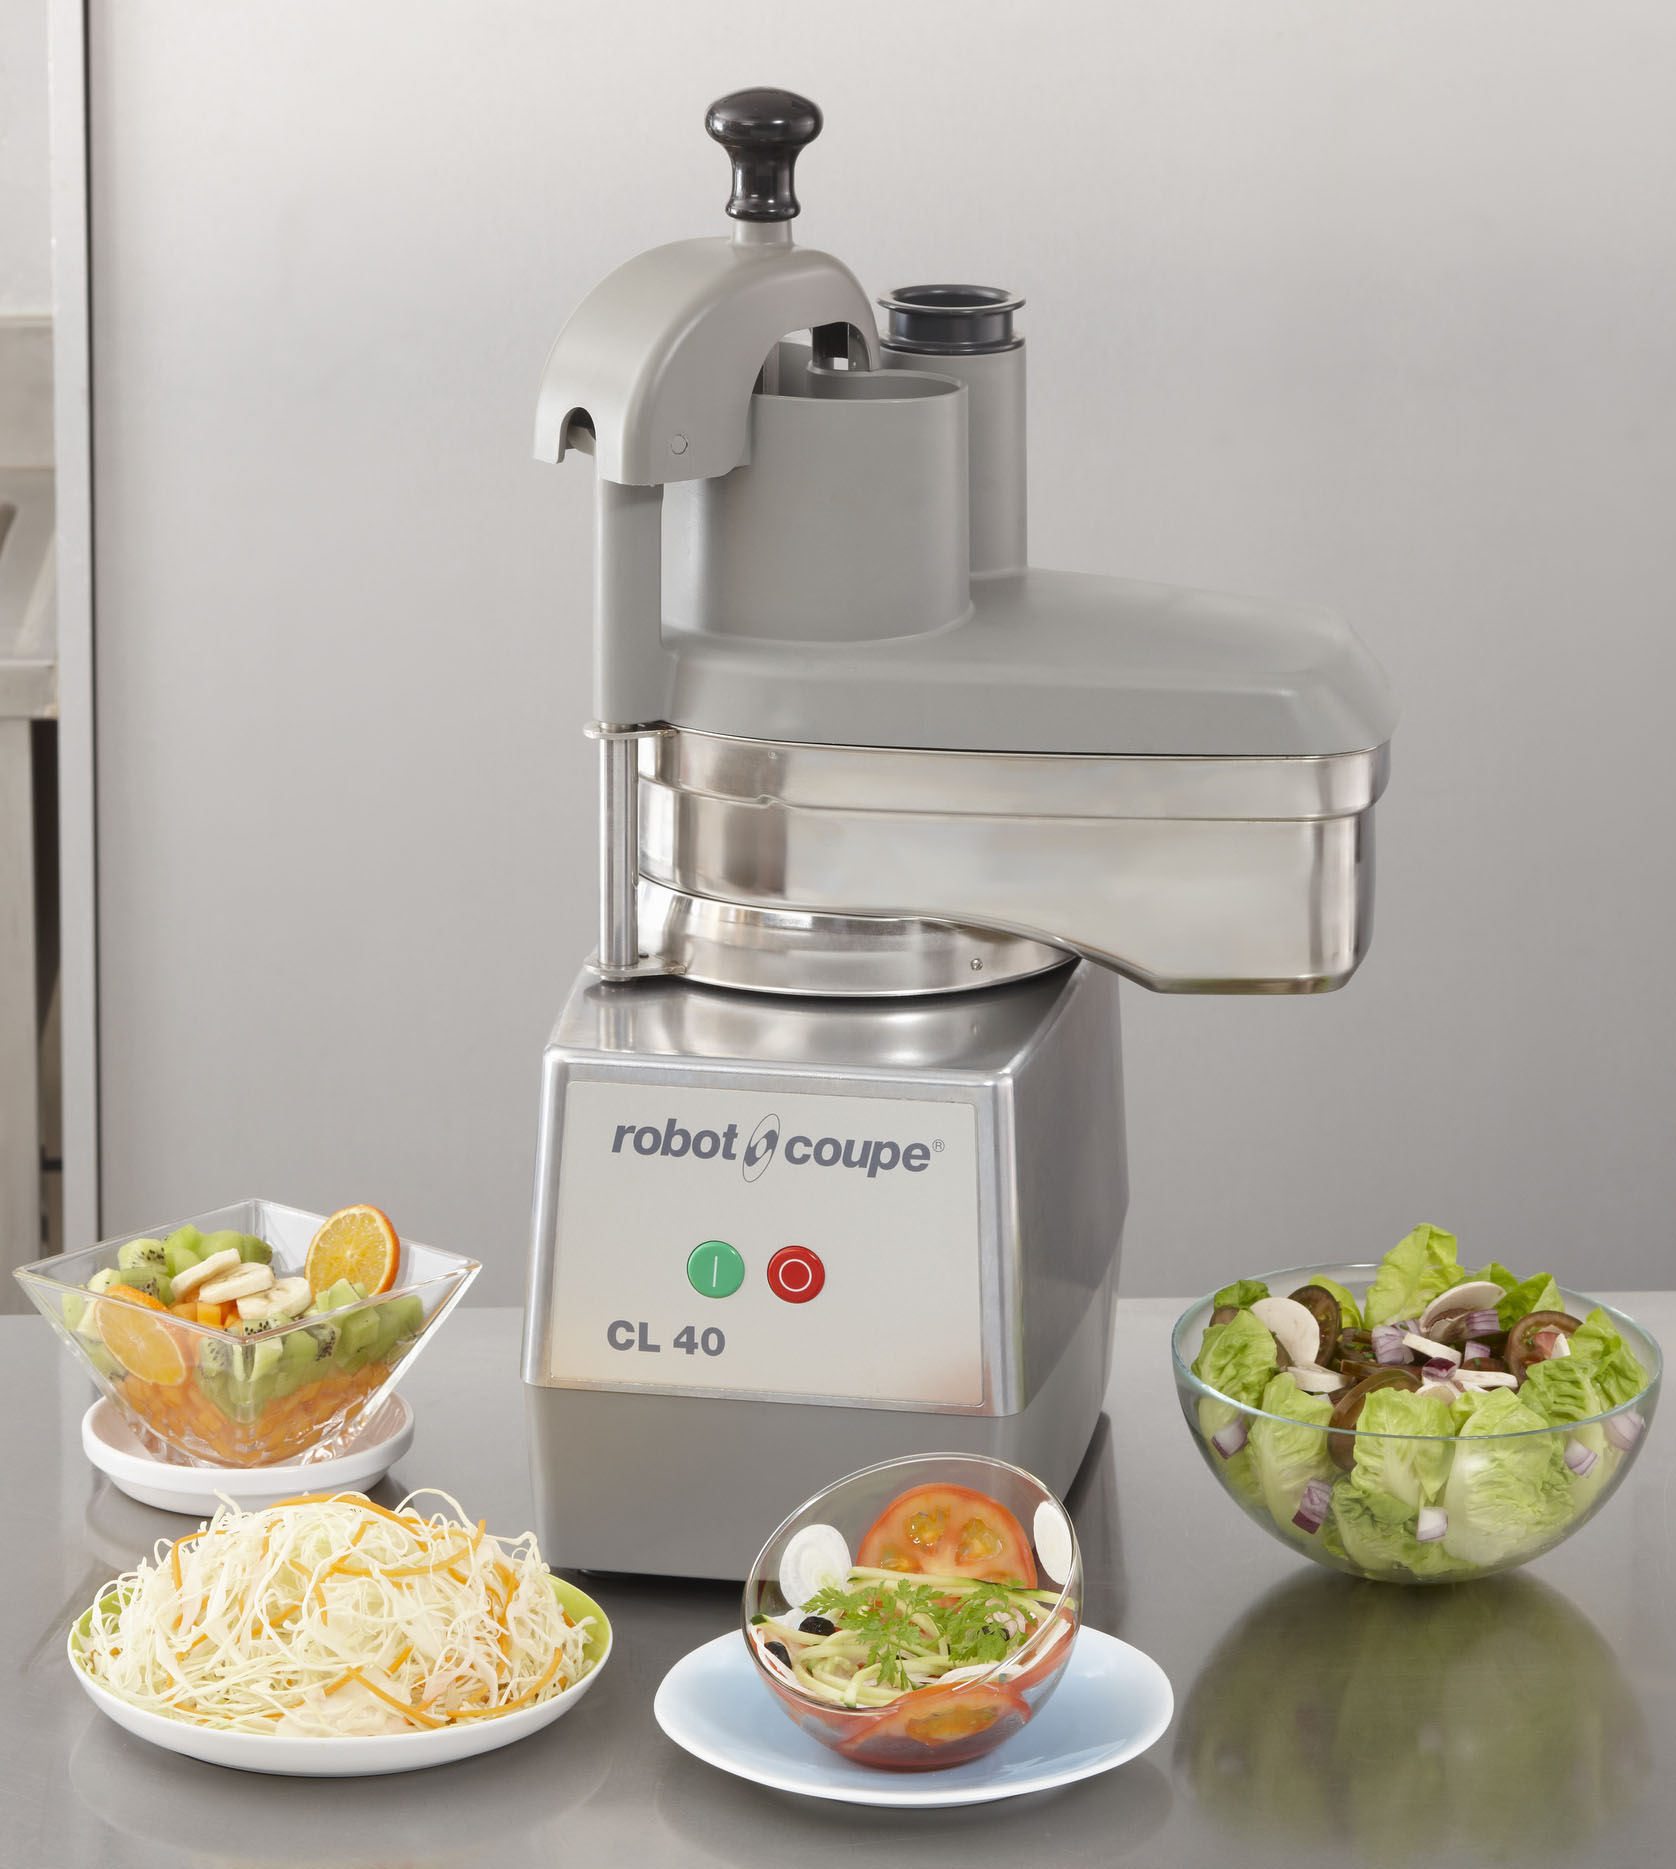 Robot Coupe CL40 Vegetable Preparation With Pack A